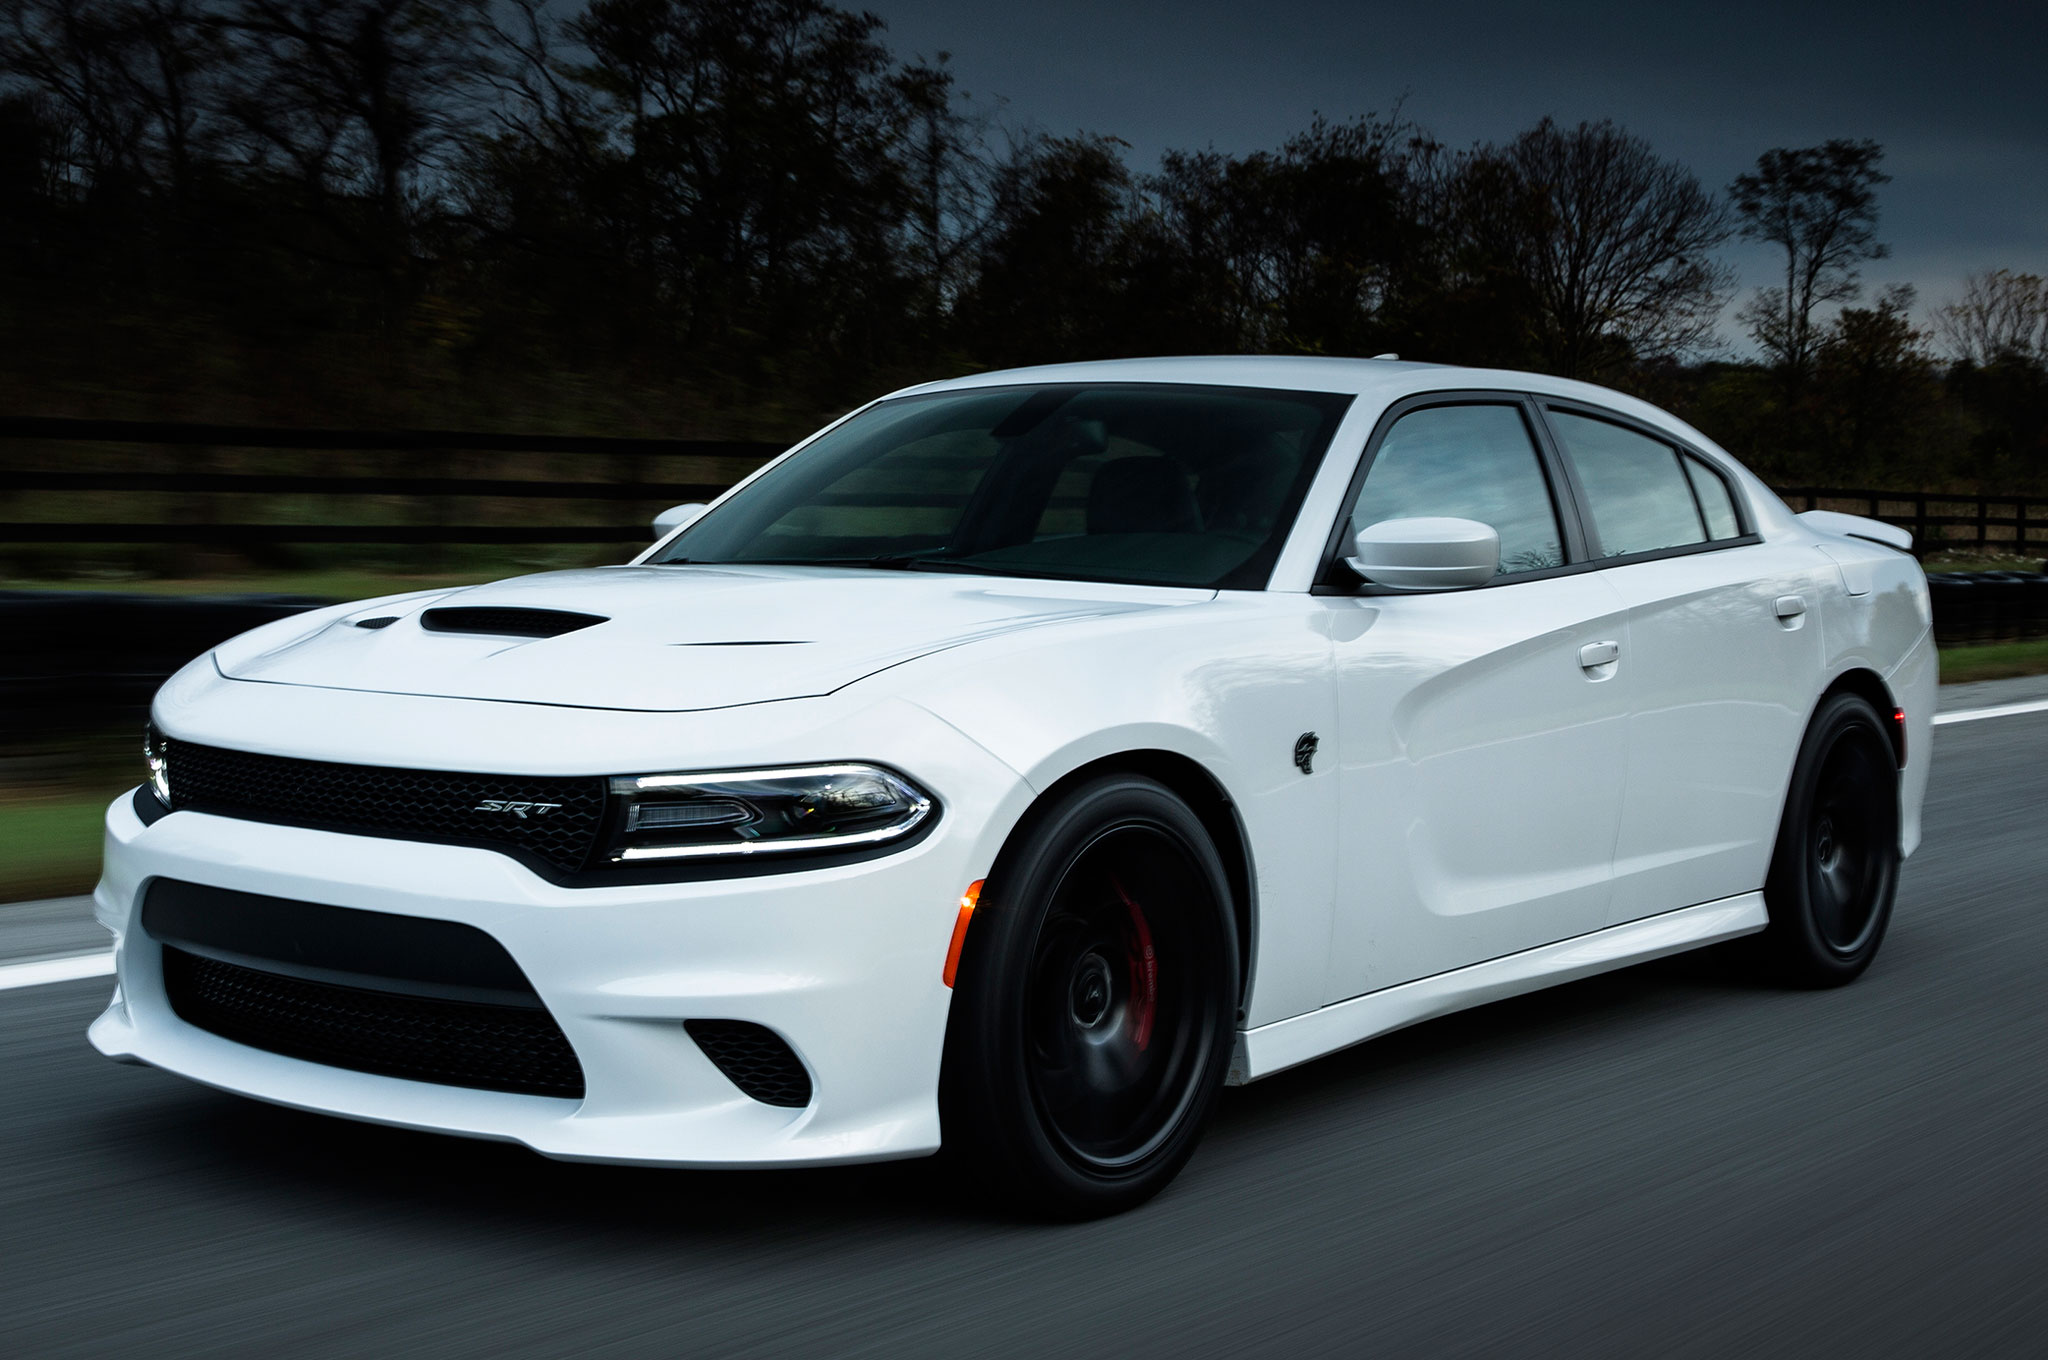 Dodge Charger Hellcat Price >> 2016 Dodge Challenger, Charger Hellcat Prices Increase $3,650-$4,200